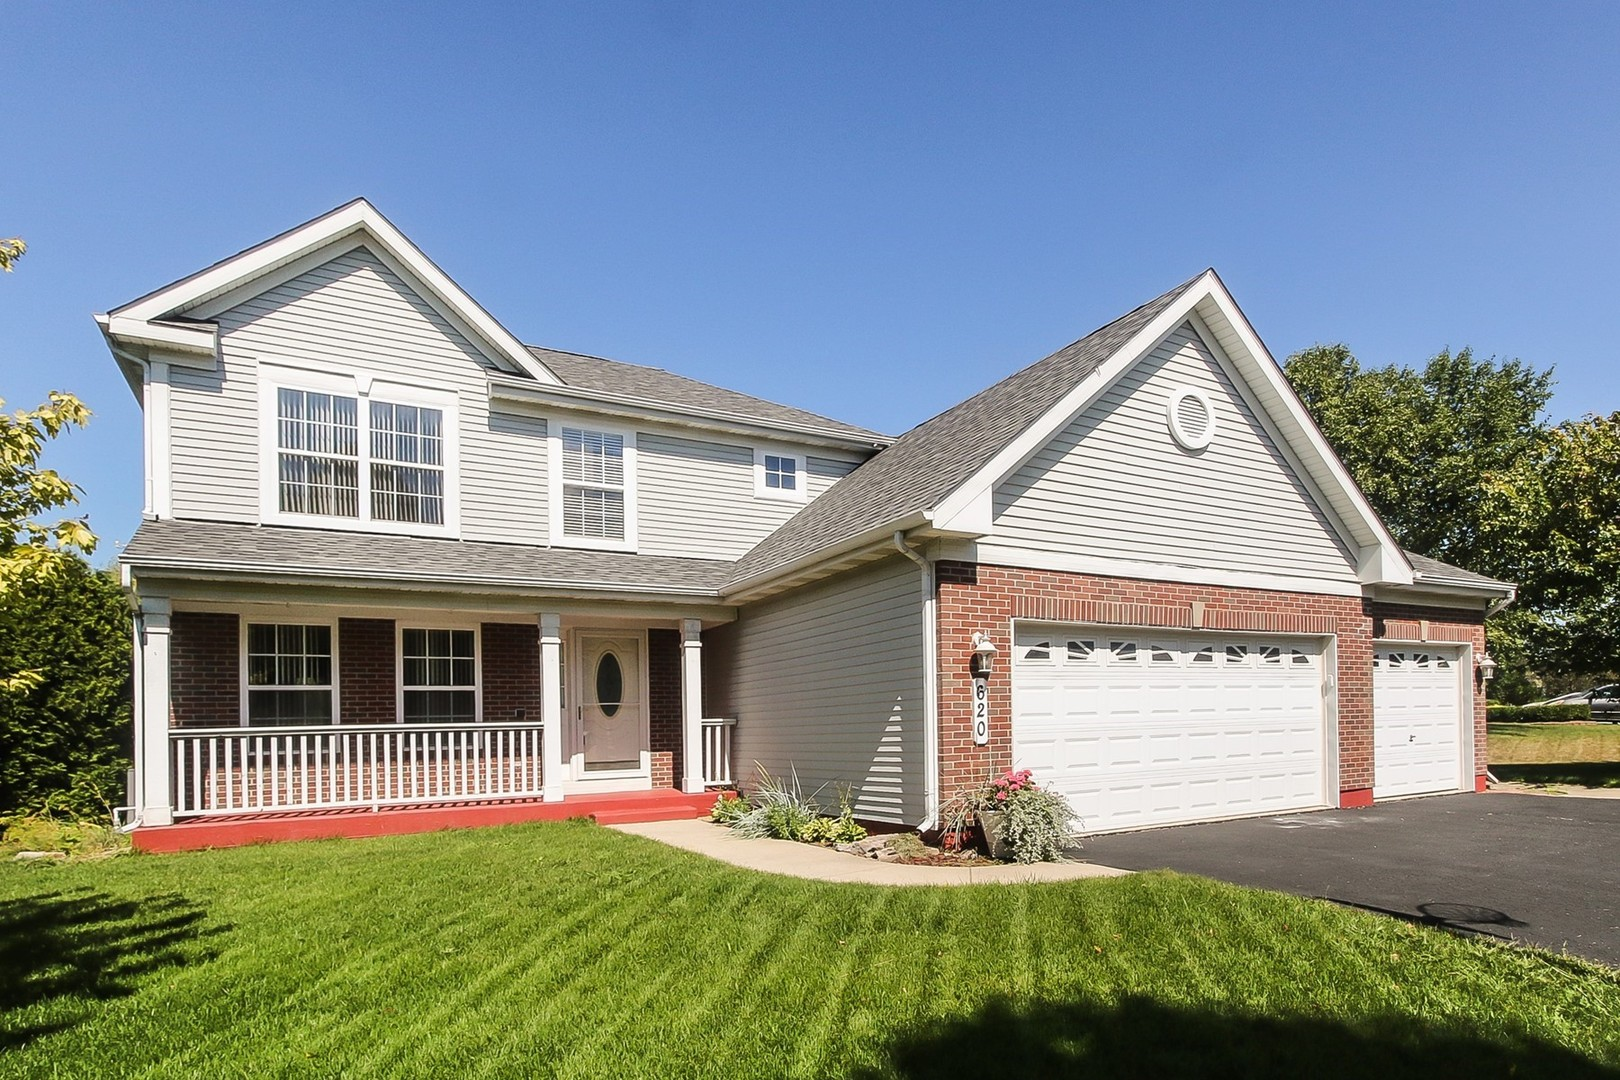 Photo for 620 Lake Plumleigh Way, Algonquin, IL 60102 (MLS # 10825615)